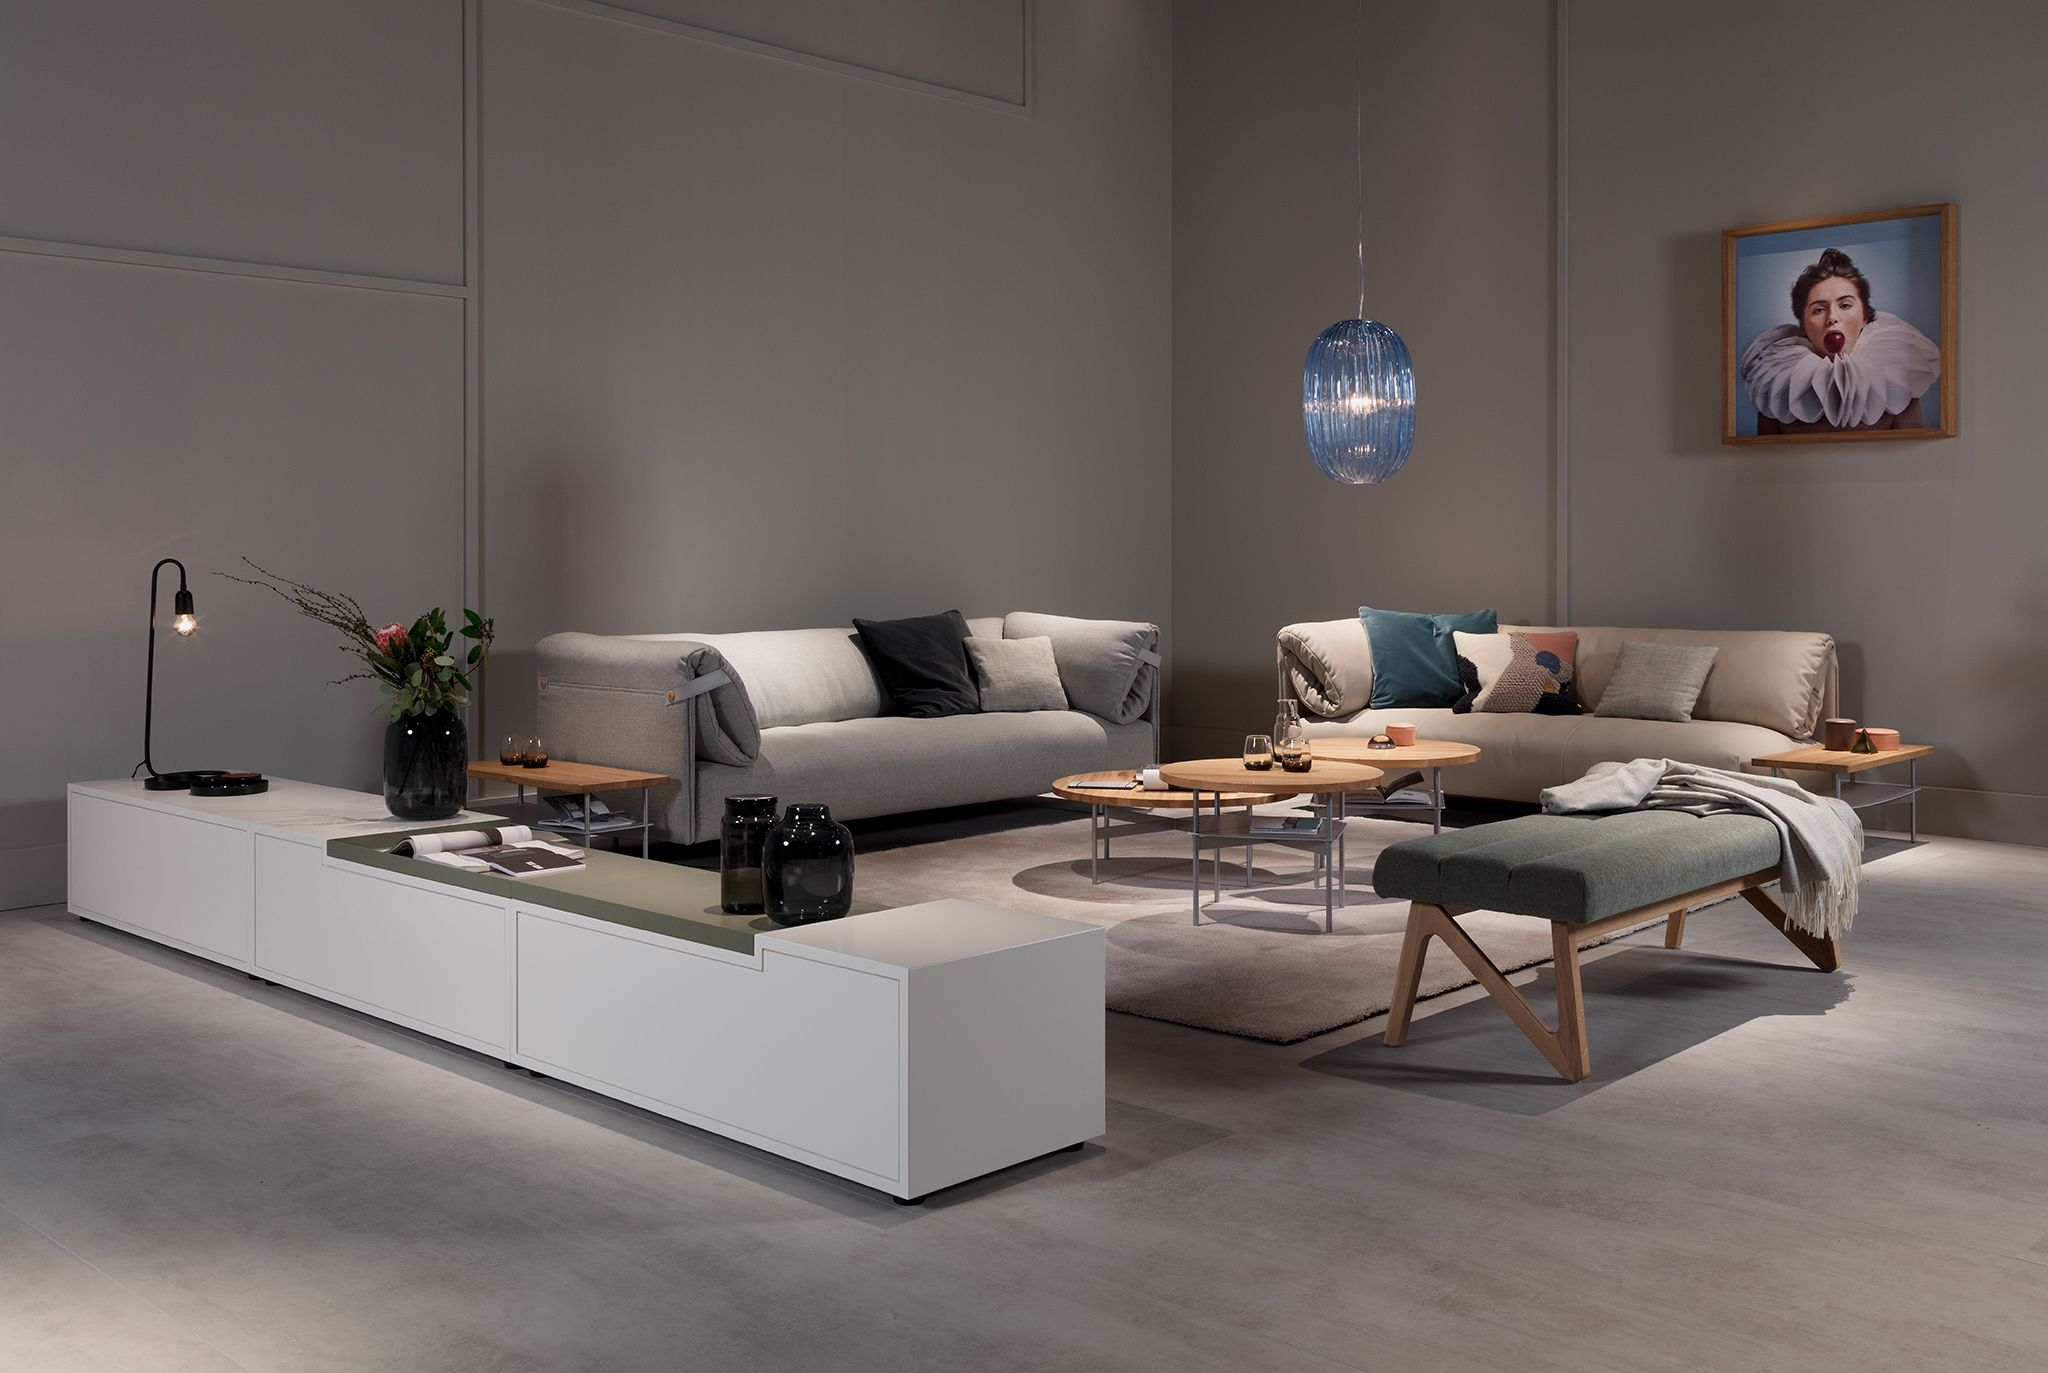 Rolf Benz Alma Sofa At Immcologne2018 Designed By Beckdesign